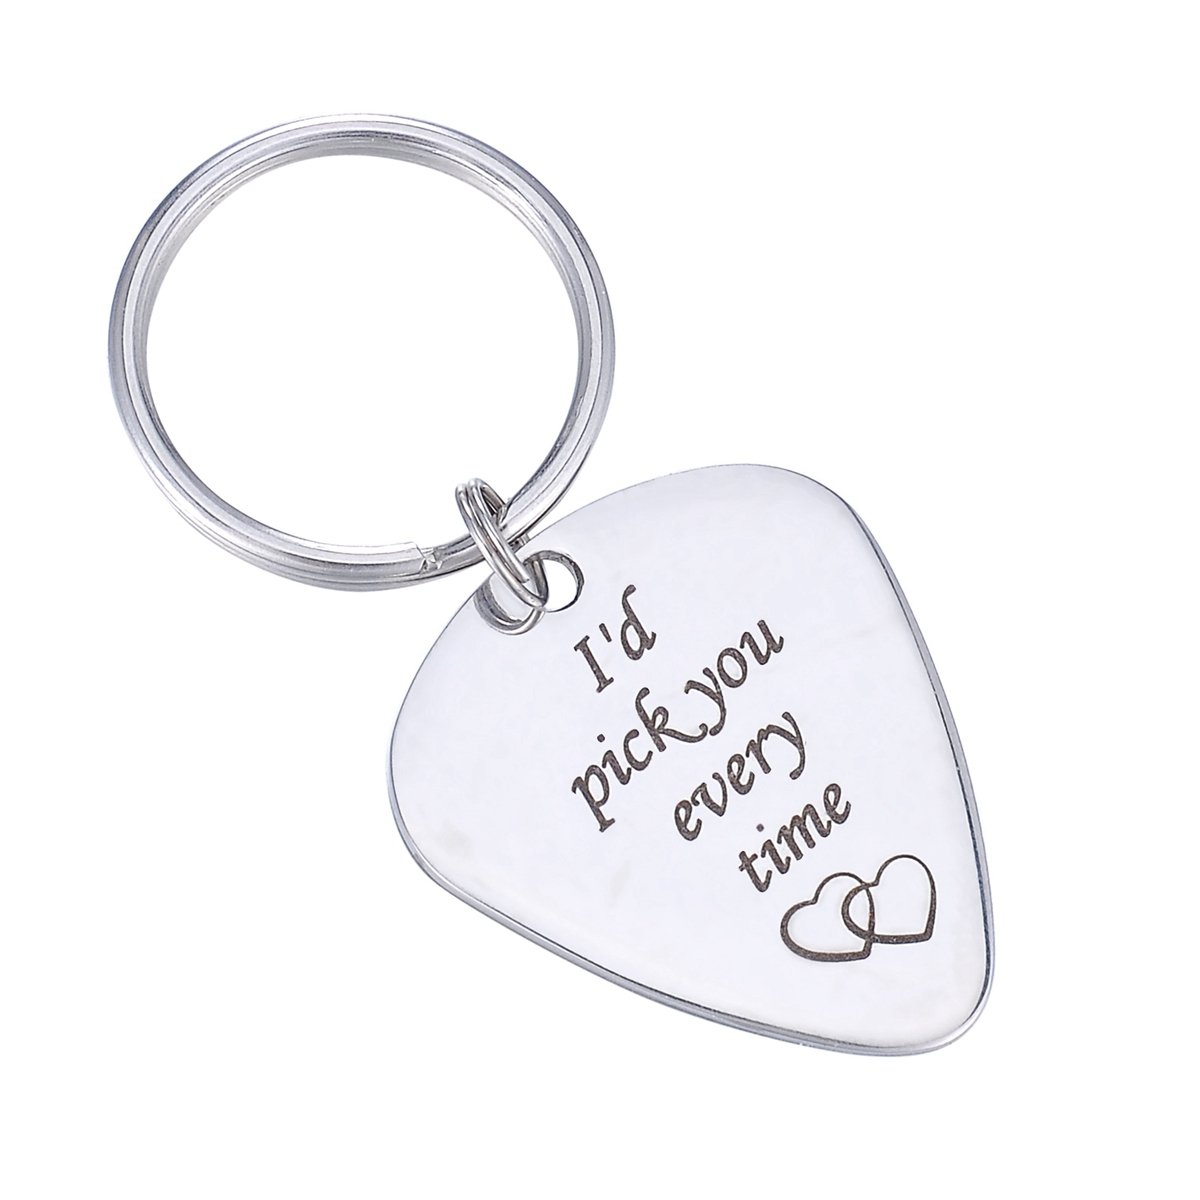 HooAMI I'd pick you every time Guitar Pick Key Chain Key Ring Music Gift for Unisex TY BETY114640